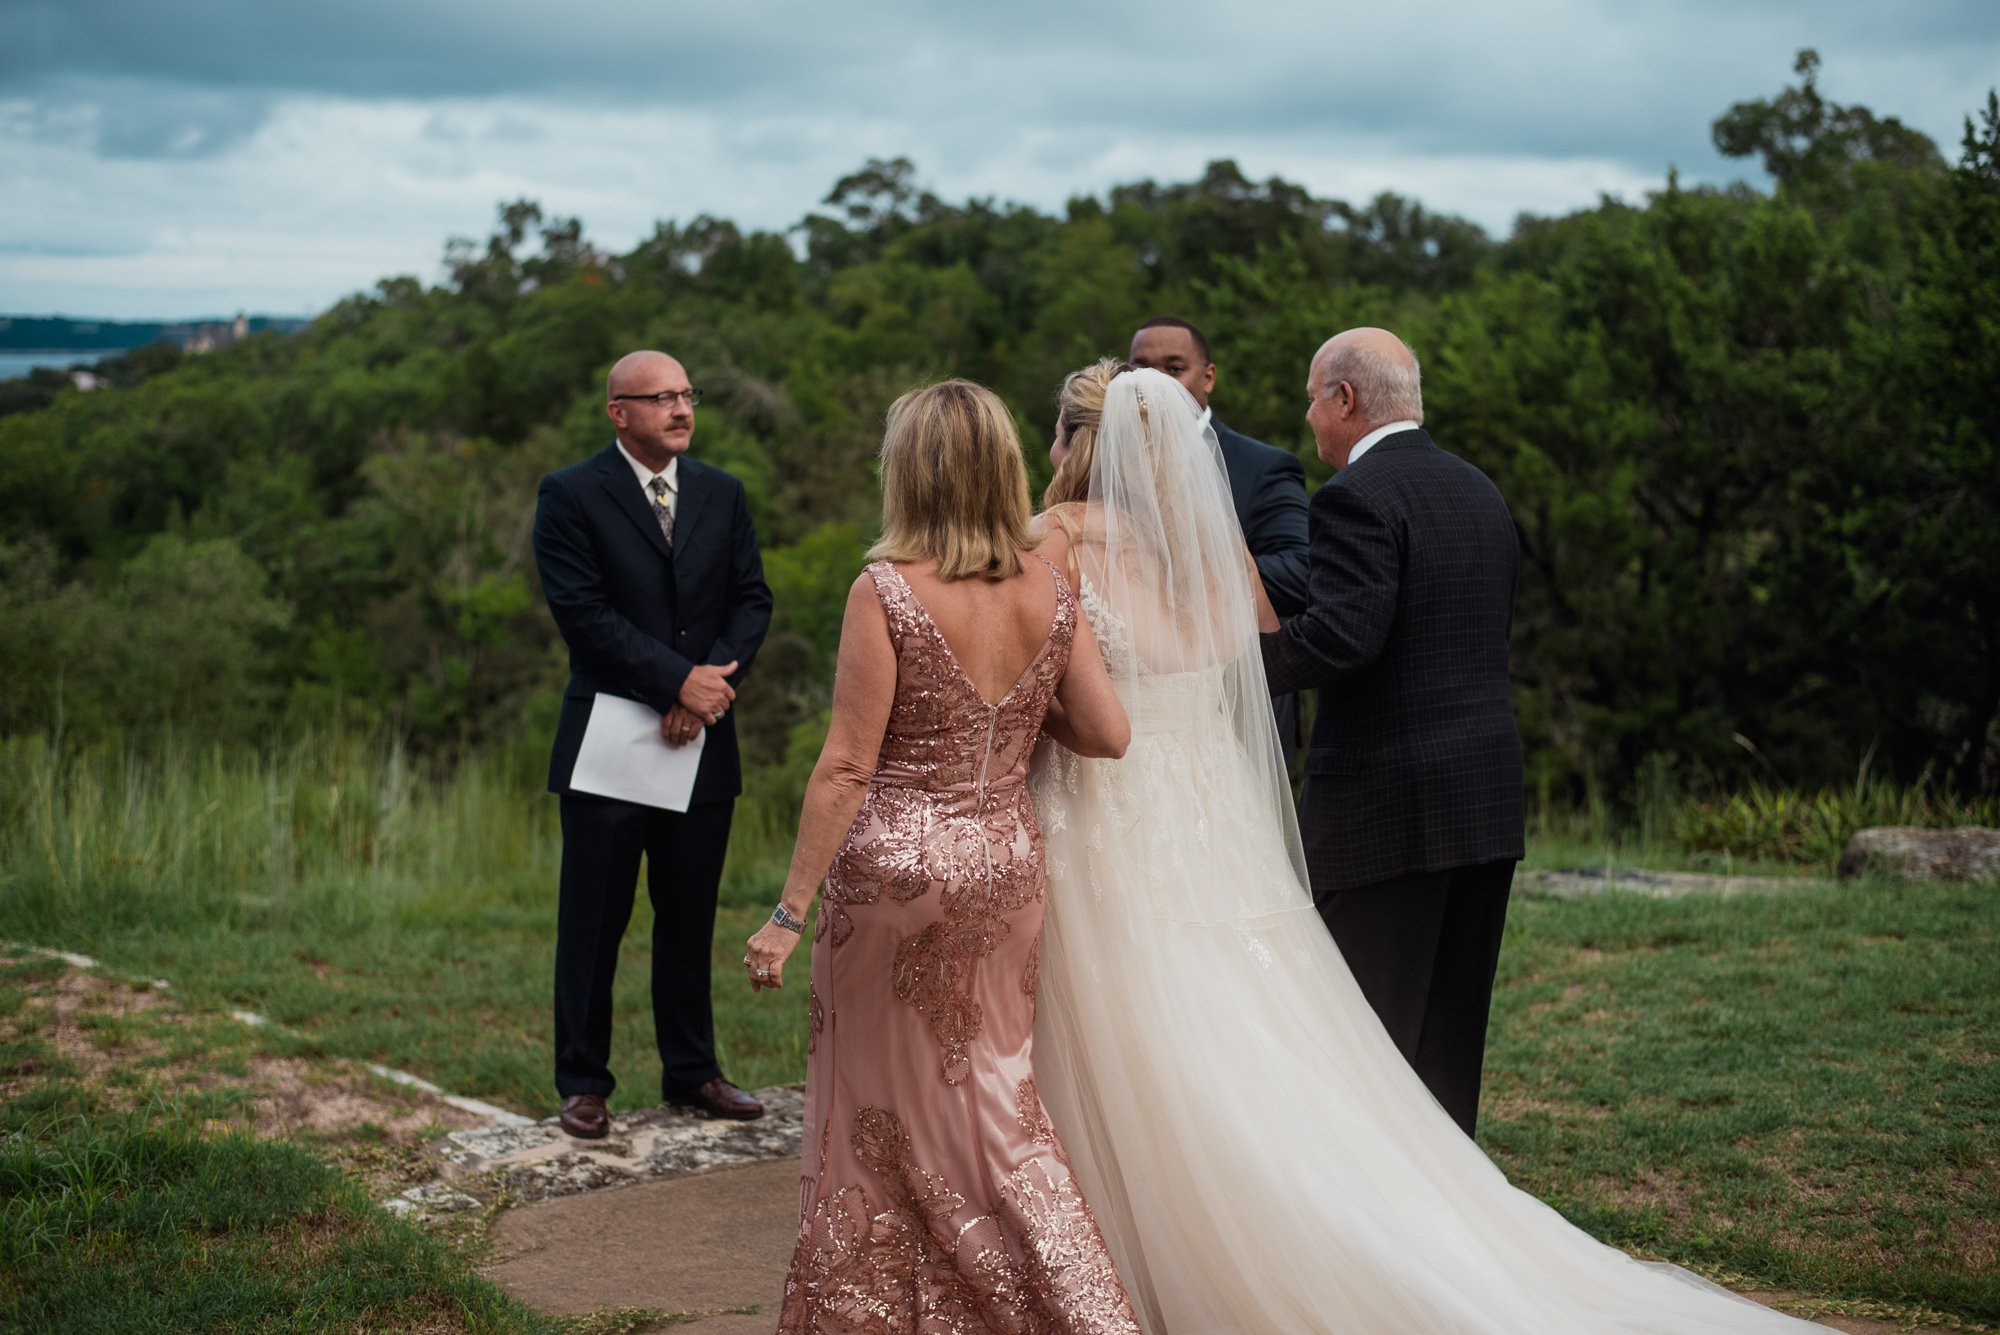 small austin wedding, micro wedding in austin, lake travis wedding, texas micro wedding photographs